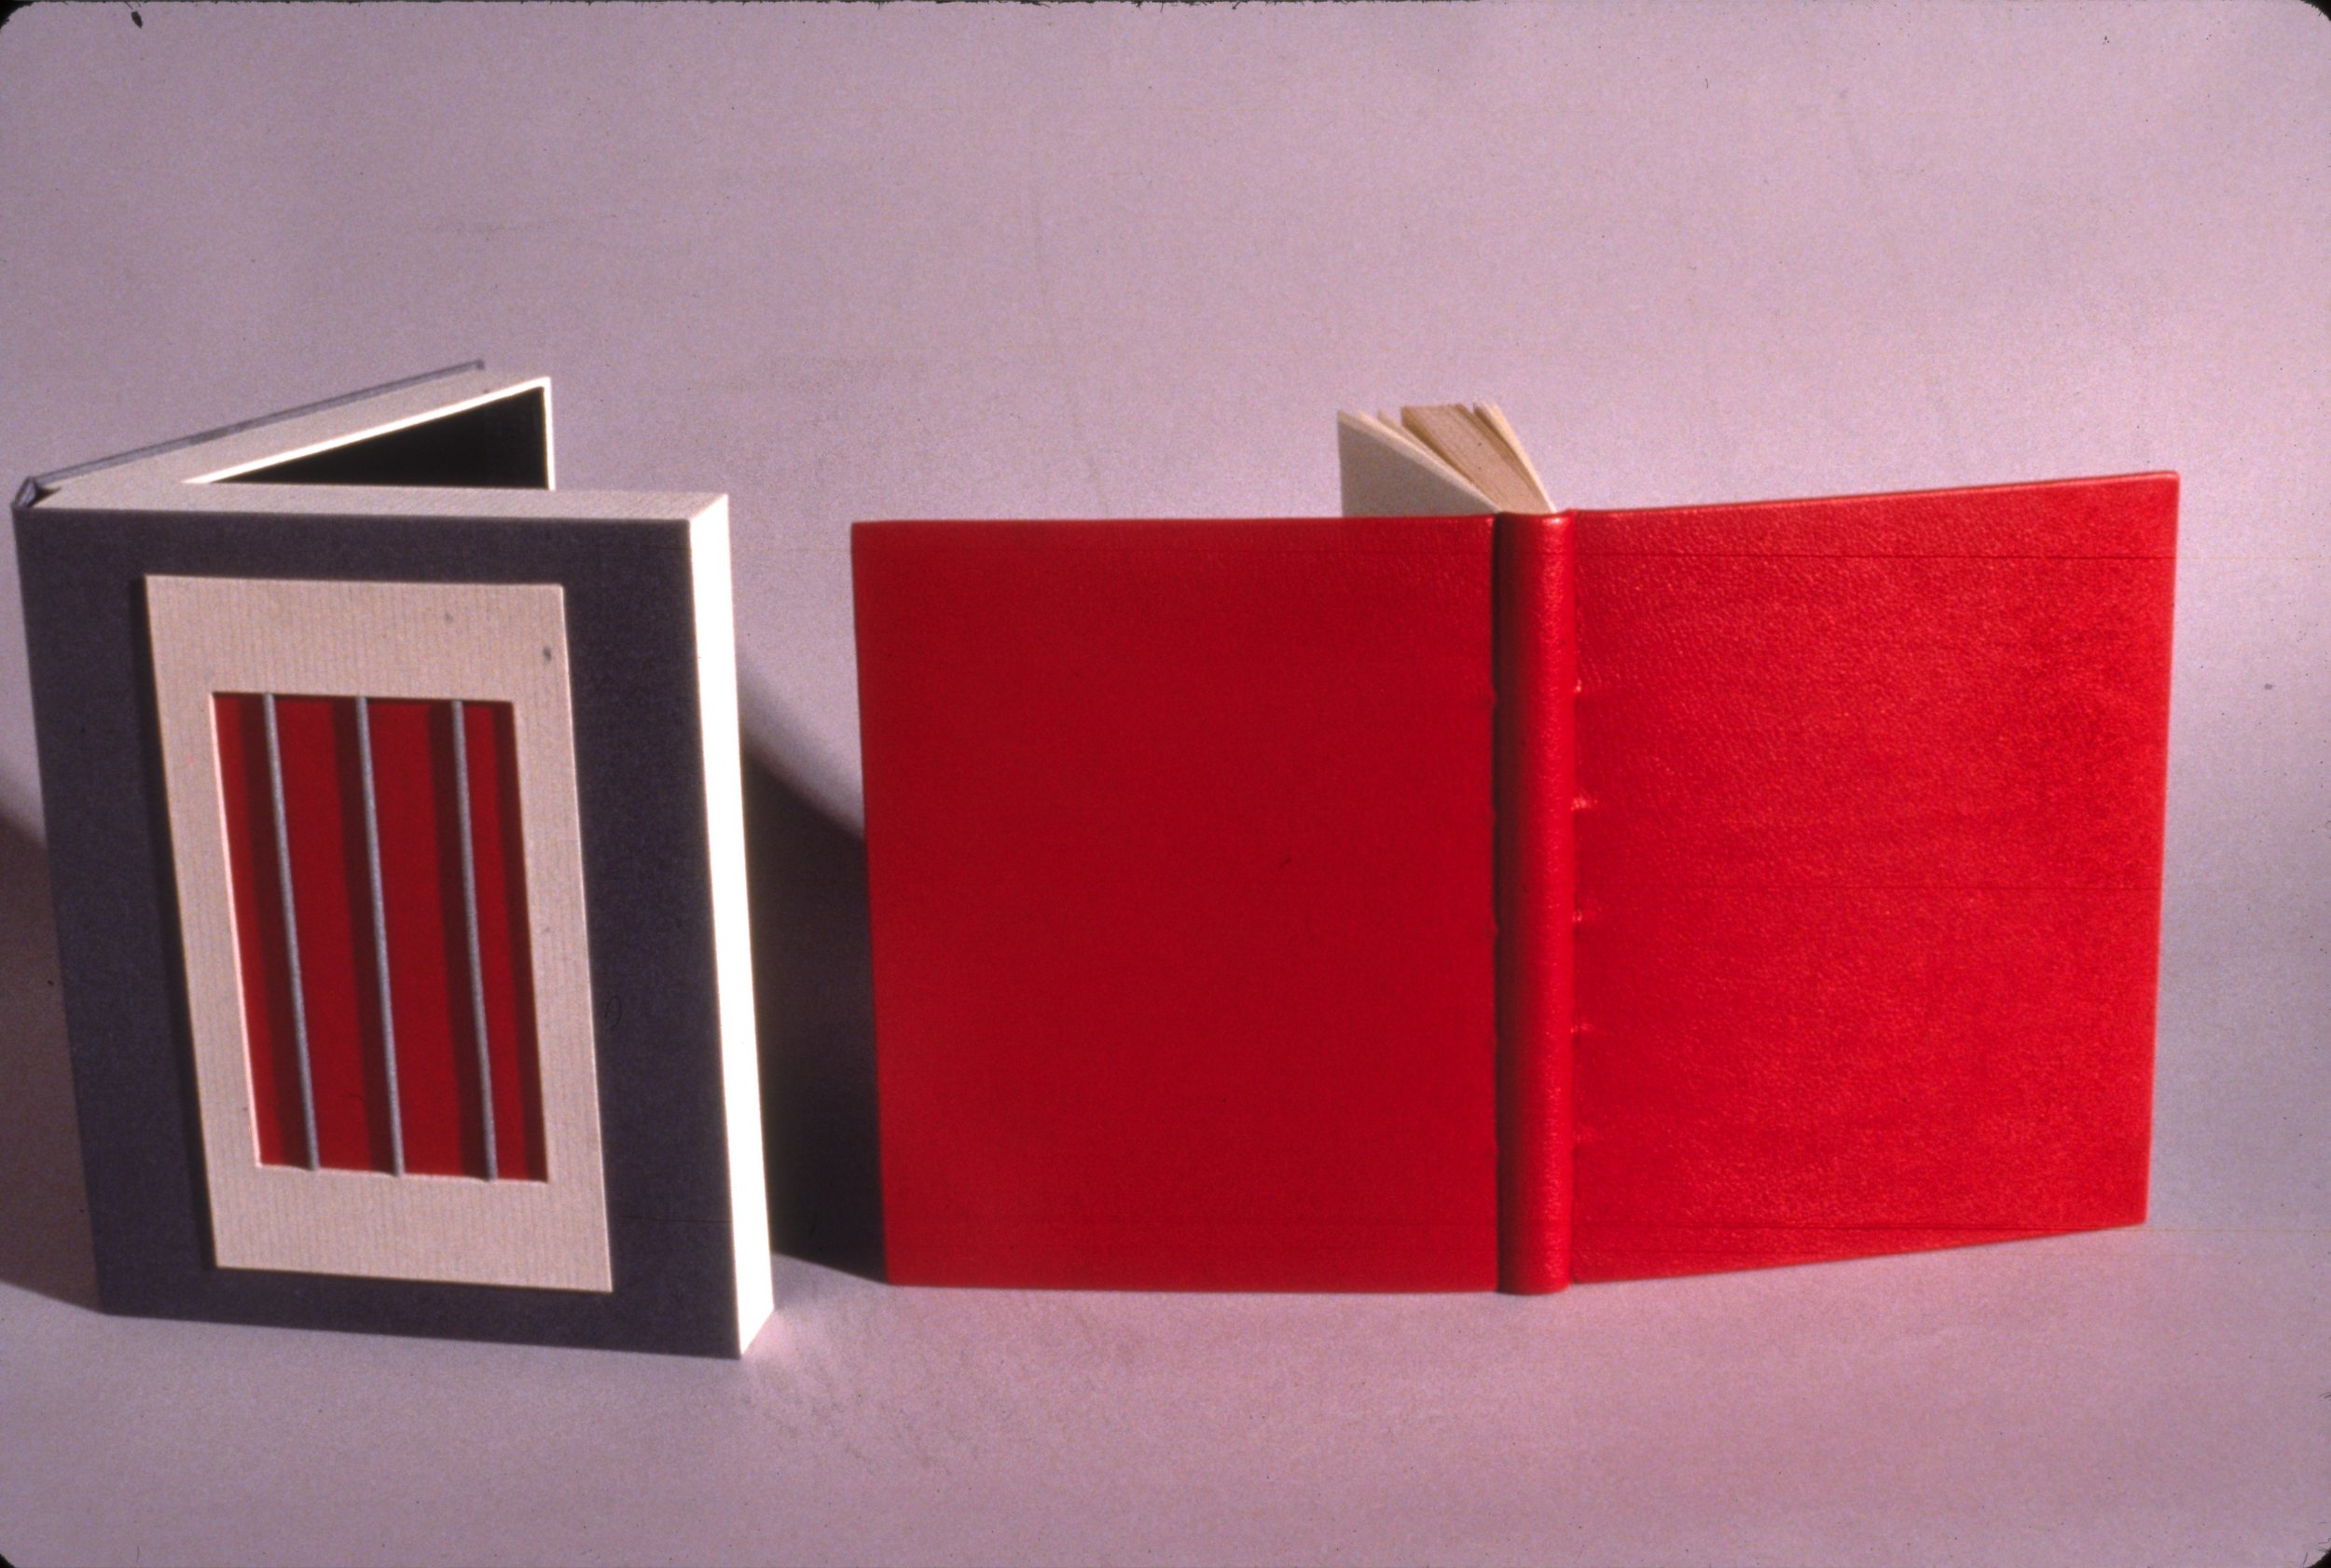 The Ballad of Reading Gaol, by Oscar Wilde - This book was rebound with red Morrocan calf in the French tight back style. The protective clamshell is made of grey linen with a decorative front design.